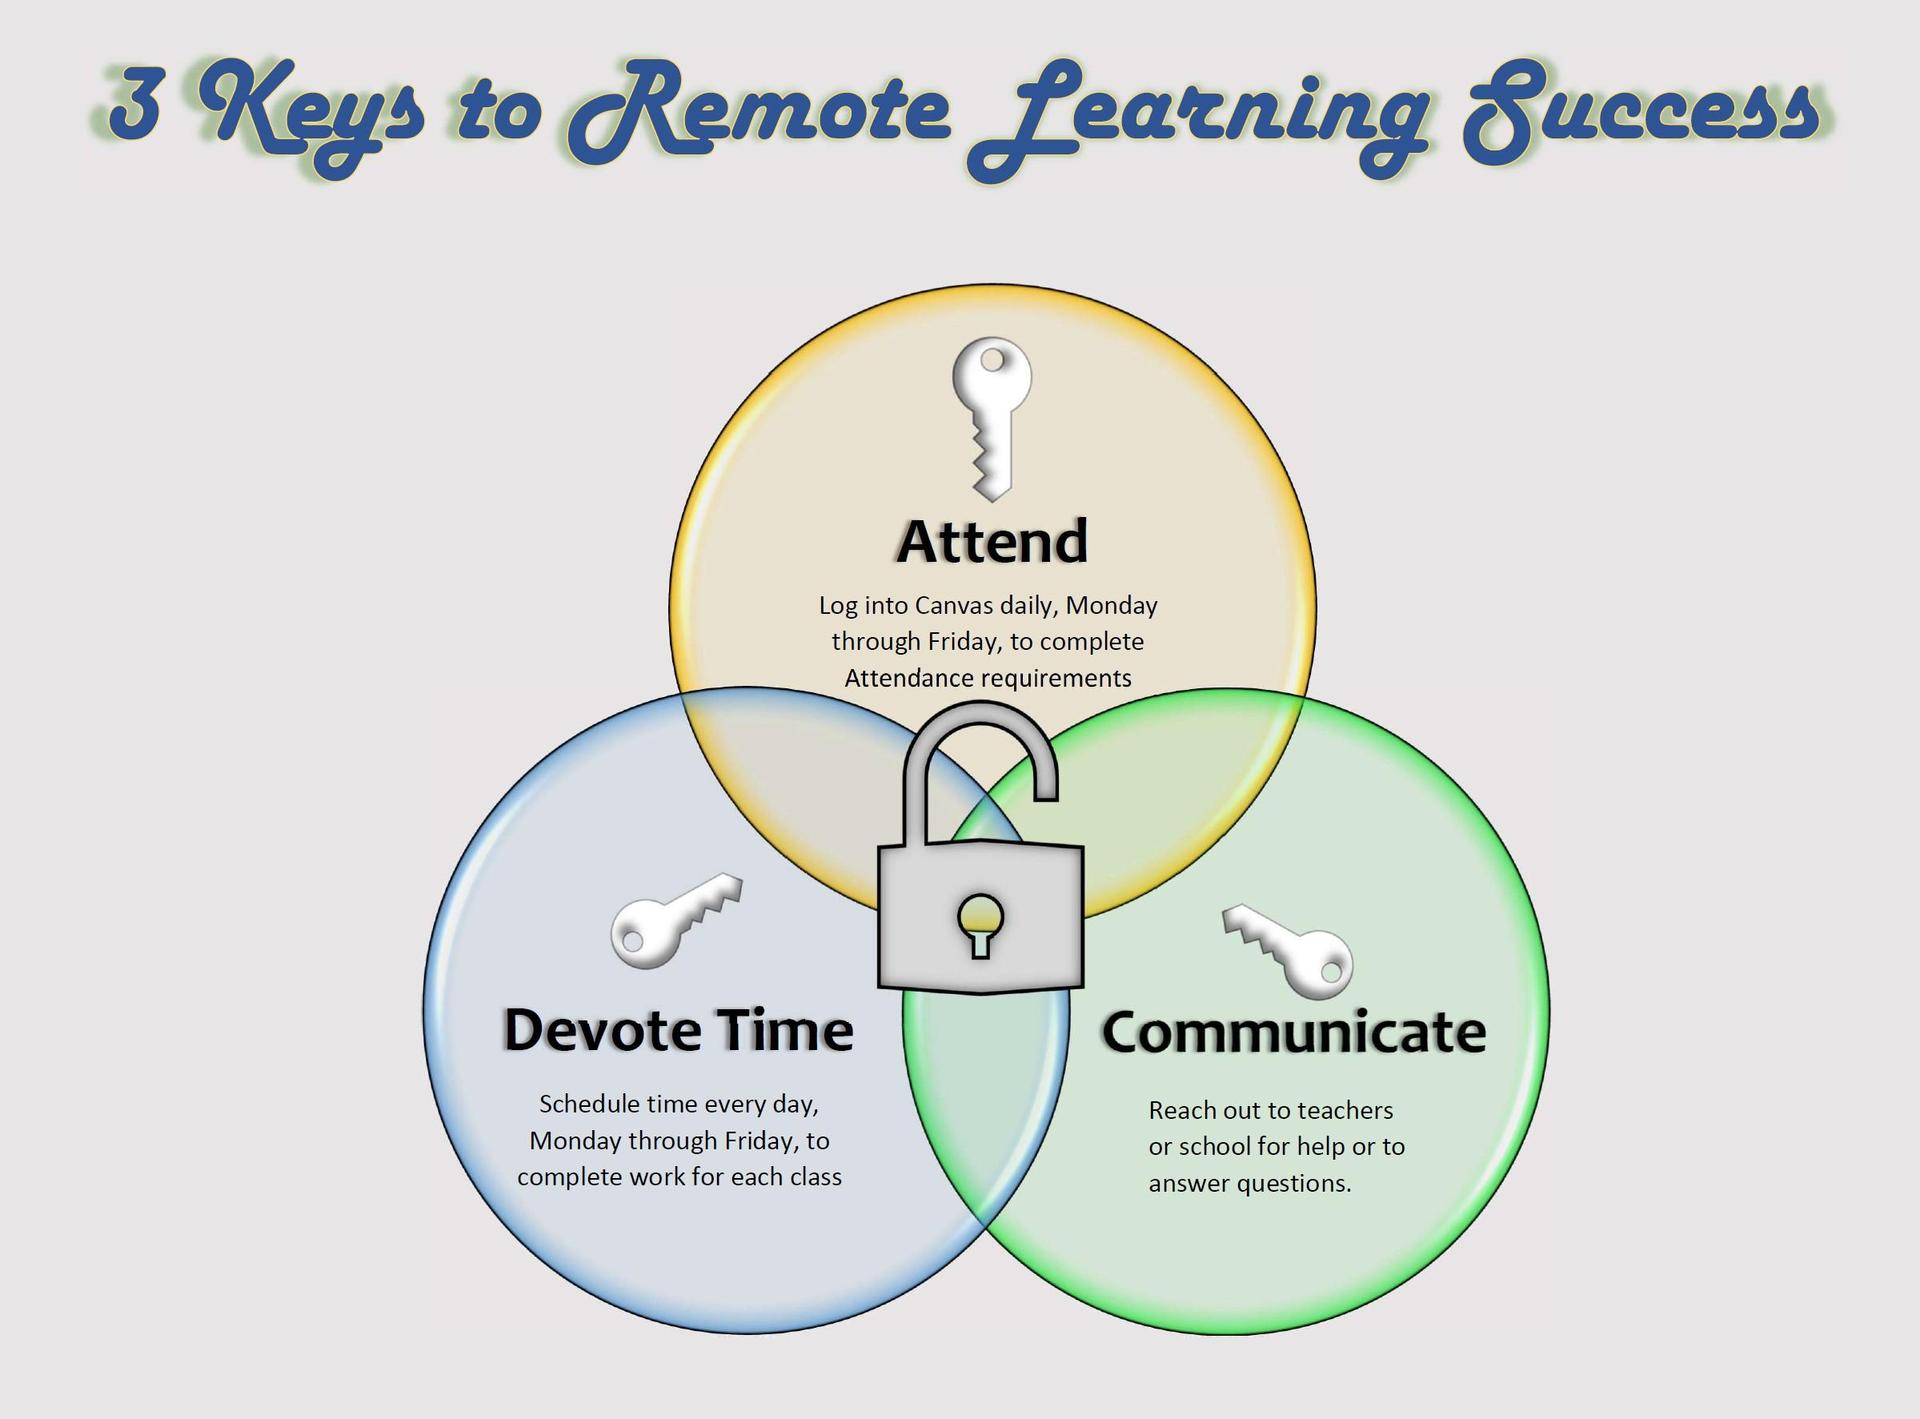 3 Keys to Remote Learning Success